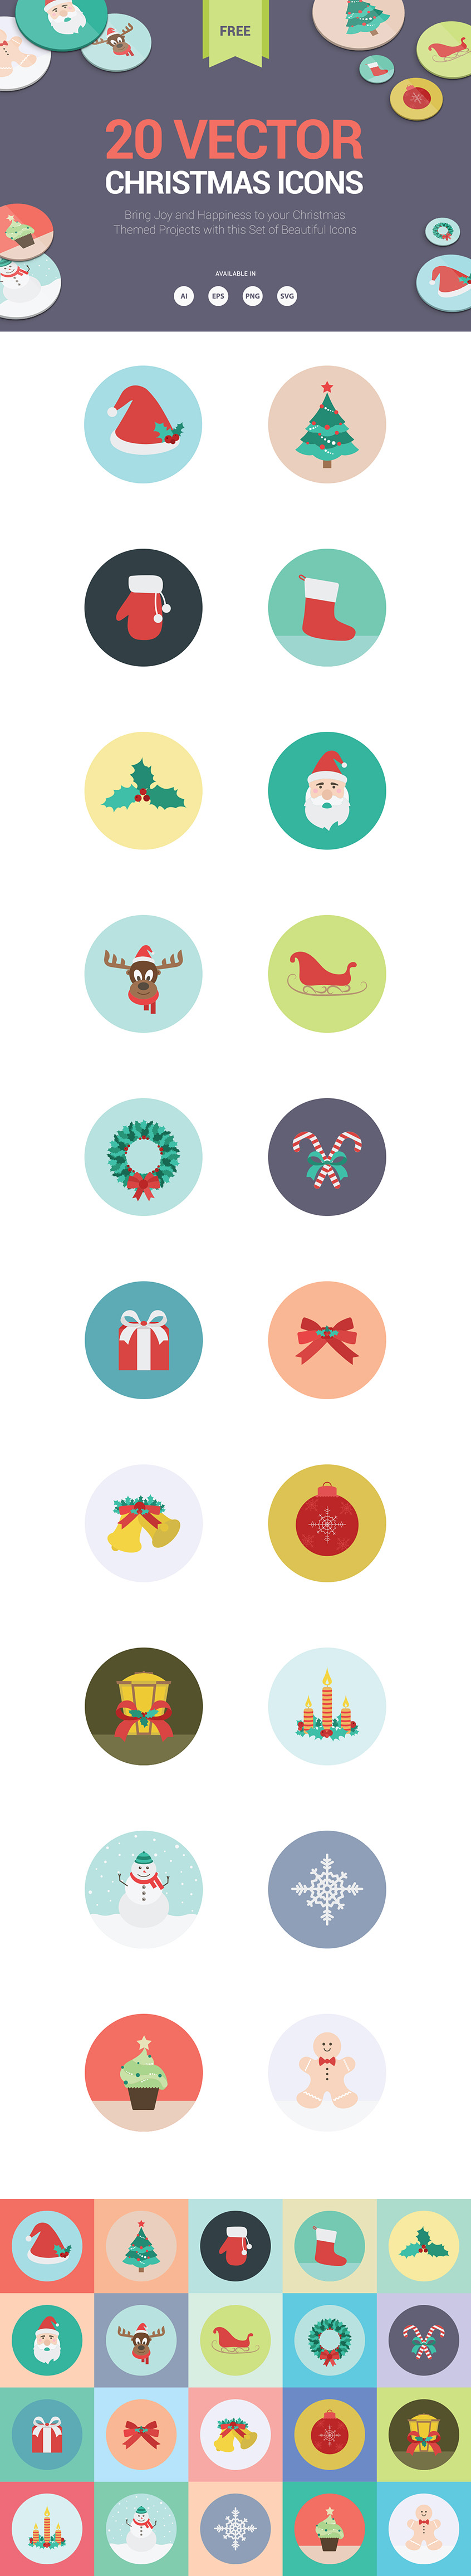 20 high quality chirstmas icons in ai, eps, svg and png file formats.